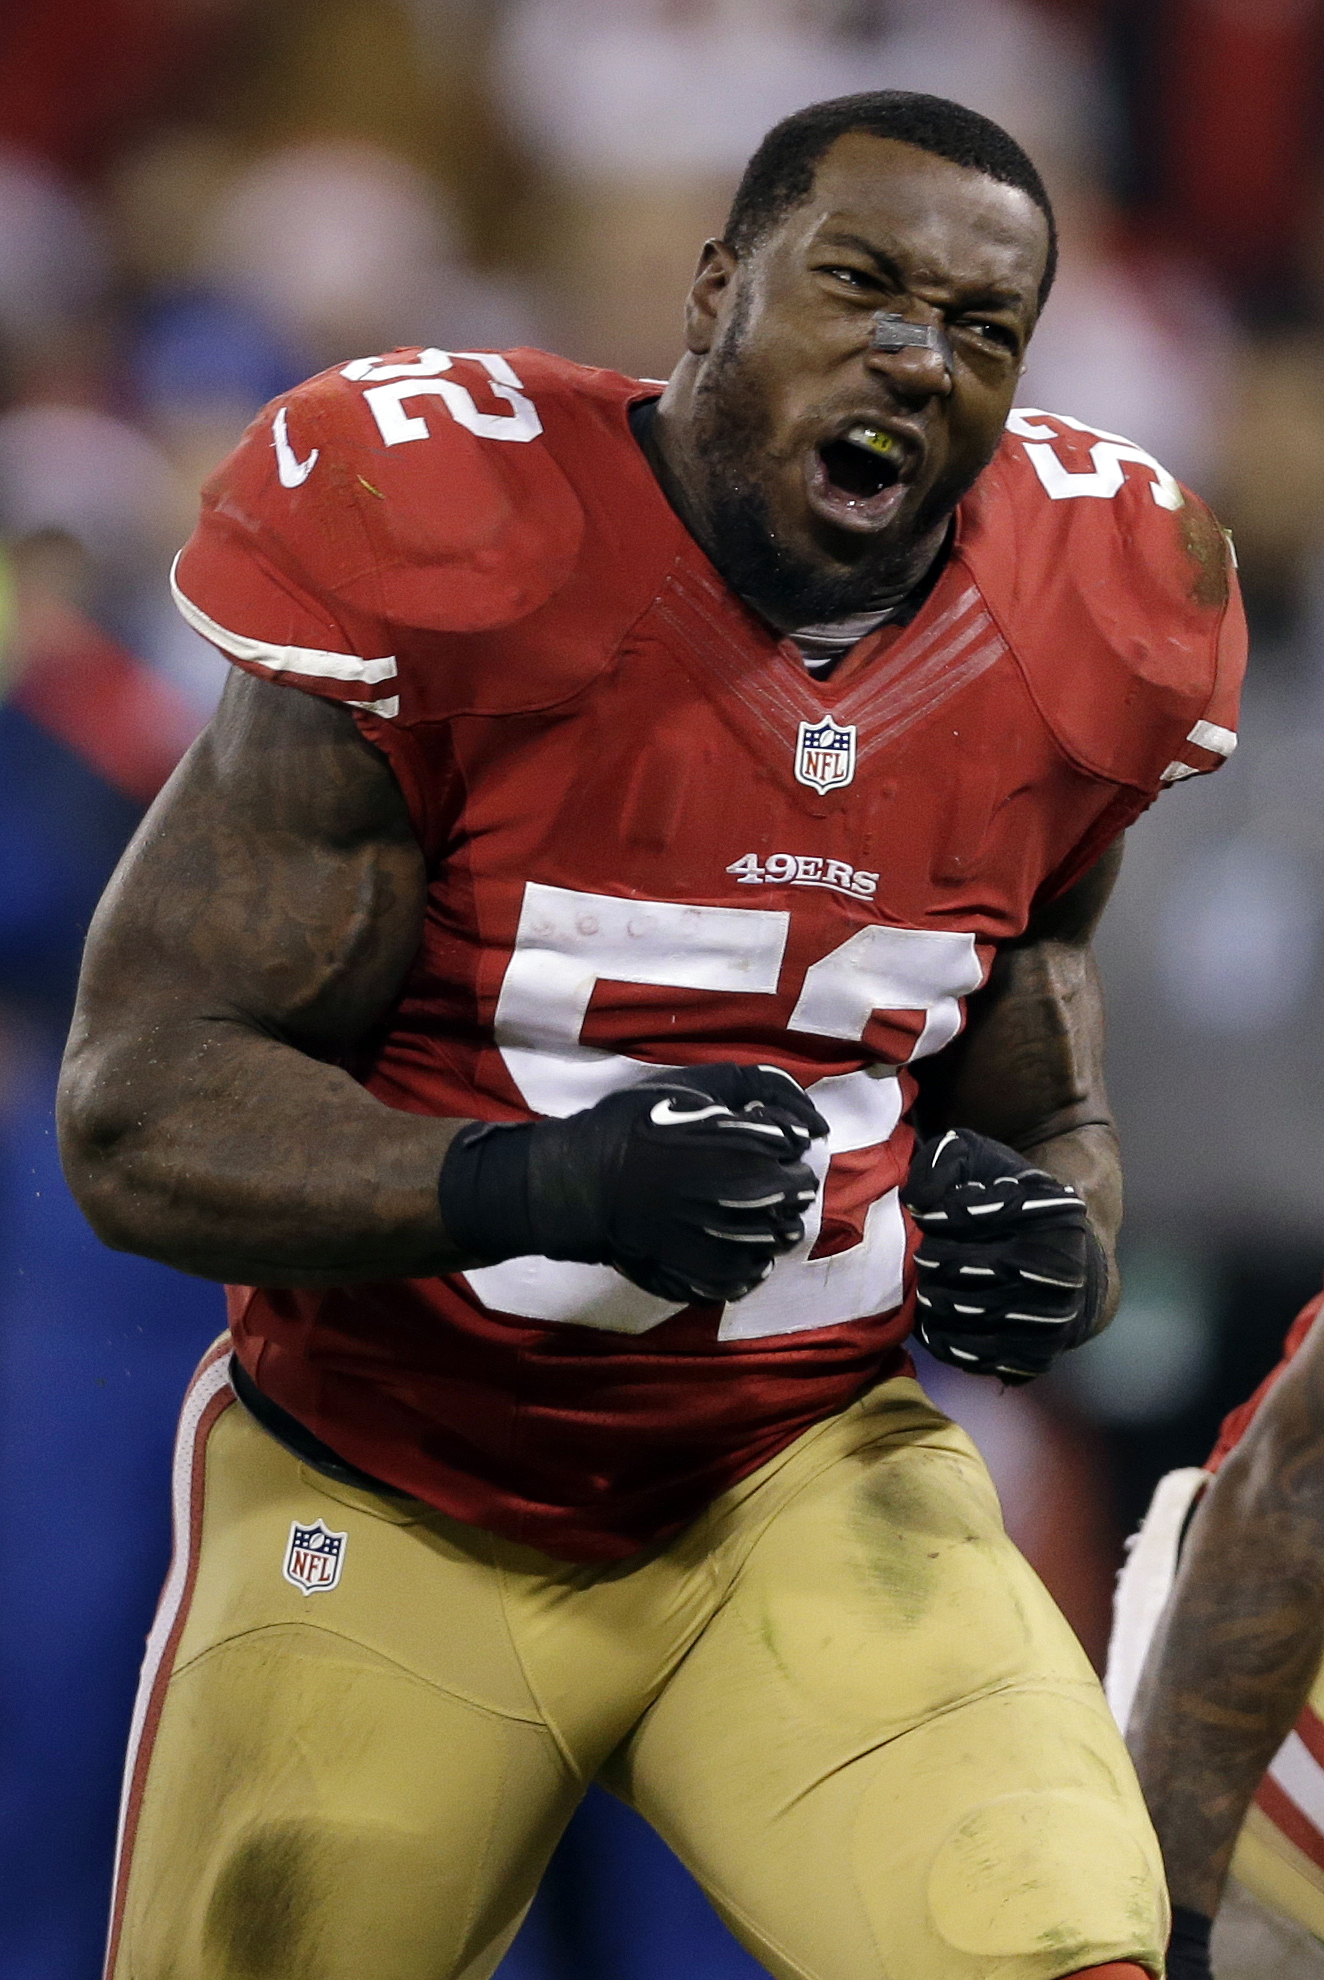 FILE - In tis Dec. 23, 2013, file photo, San Francisco 49ers Patrick Willis celebrates after teammate NaVorro Bowman made an 89-yard touchdown in the fourth quarter of an NFL football game against the Atlanta Falcons in San Francisco. illis, a seven-time Pro Bowler, will retire after his 2014 season was cut short by a toe injury that required surgery, the 49ers announced, Tuesday, March 10, 2015. (AP Photo/Marcio Jose Sanchez, File)